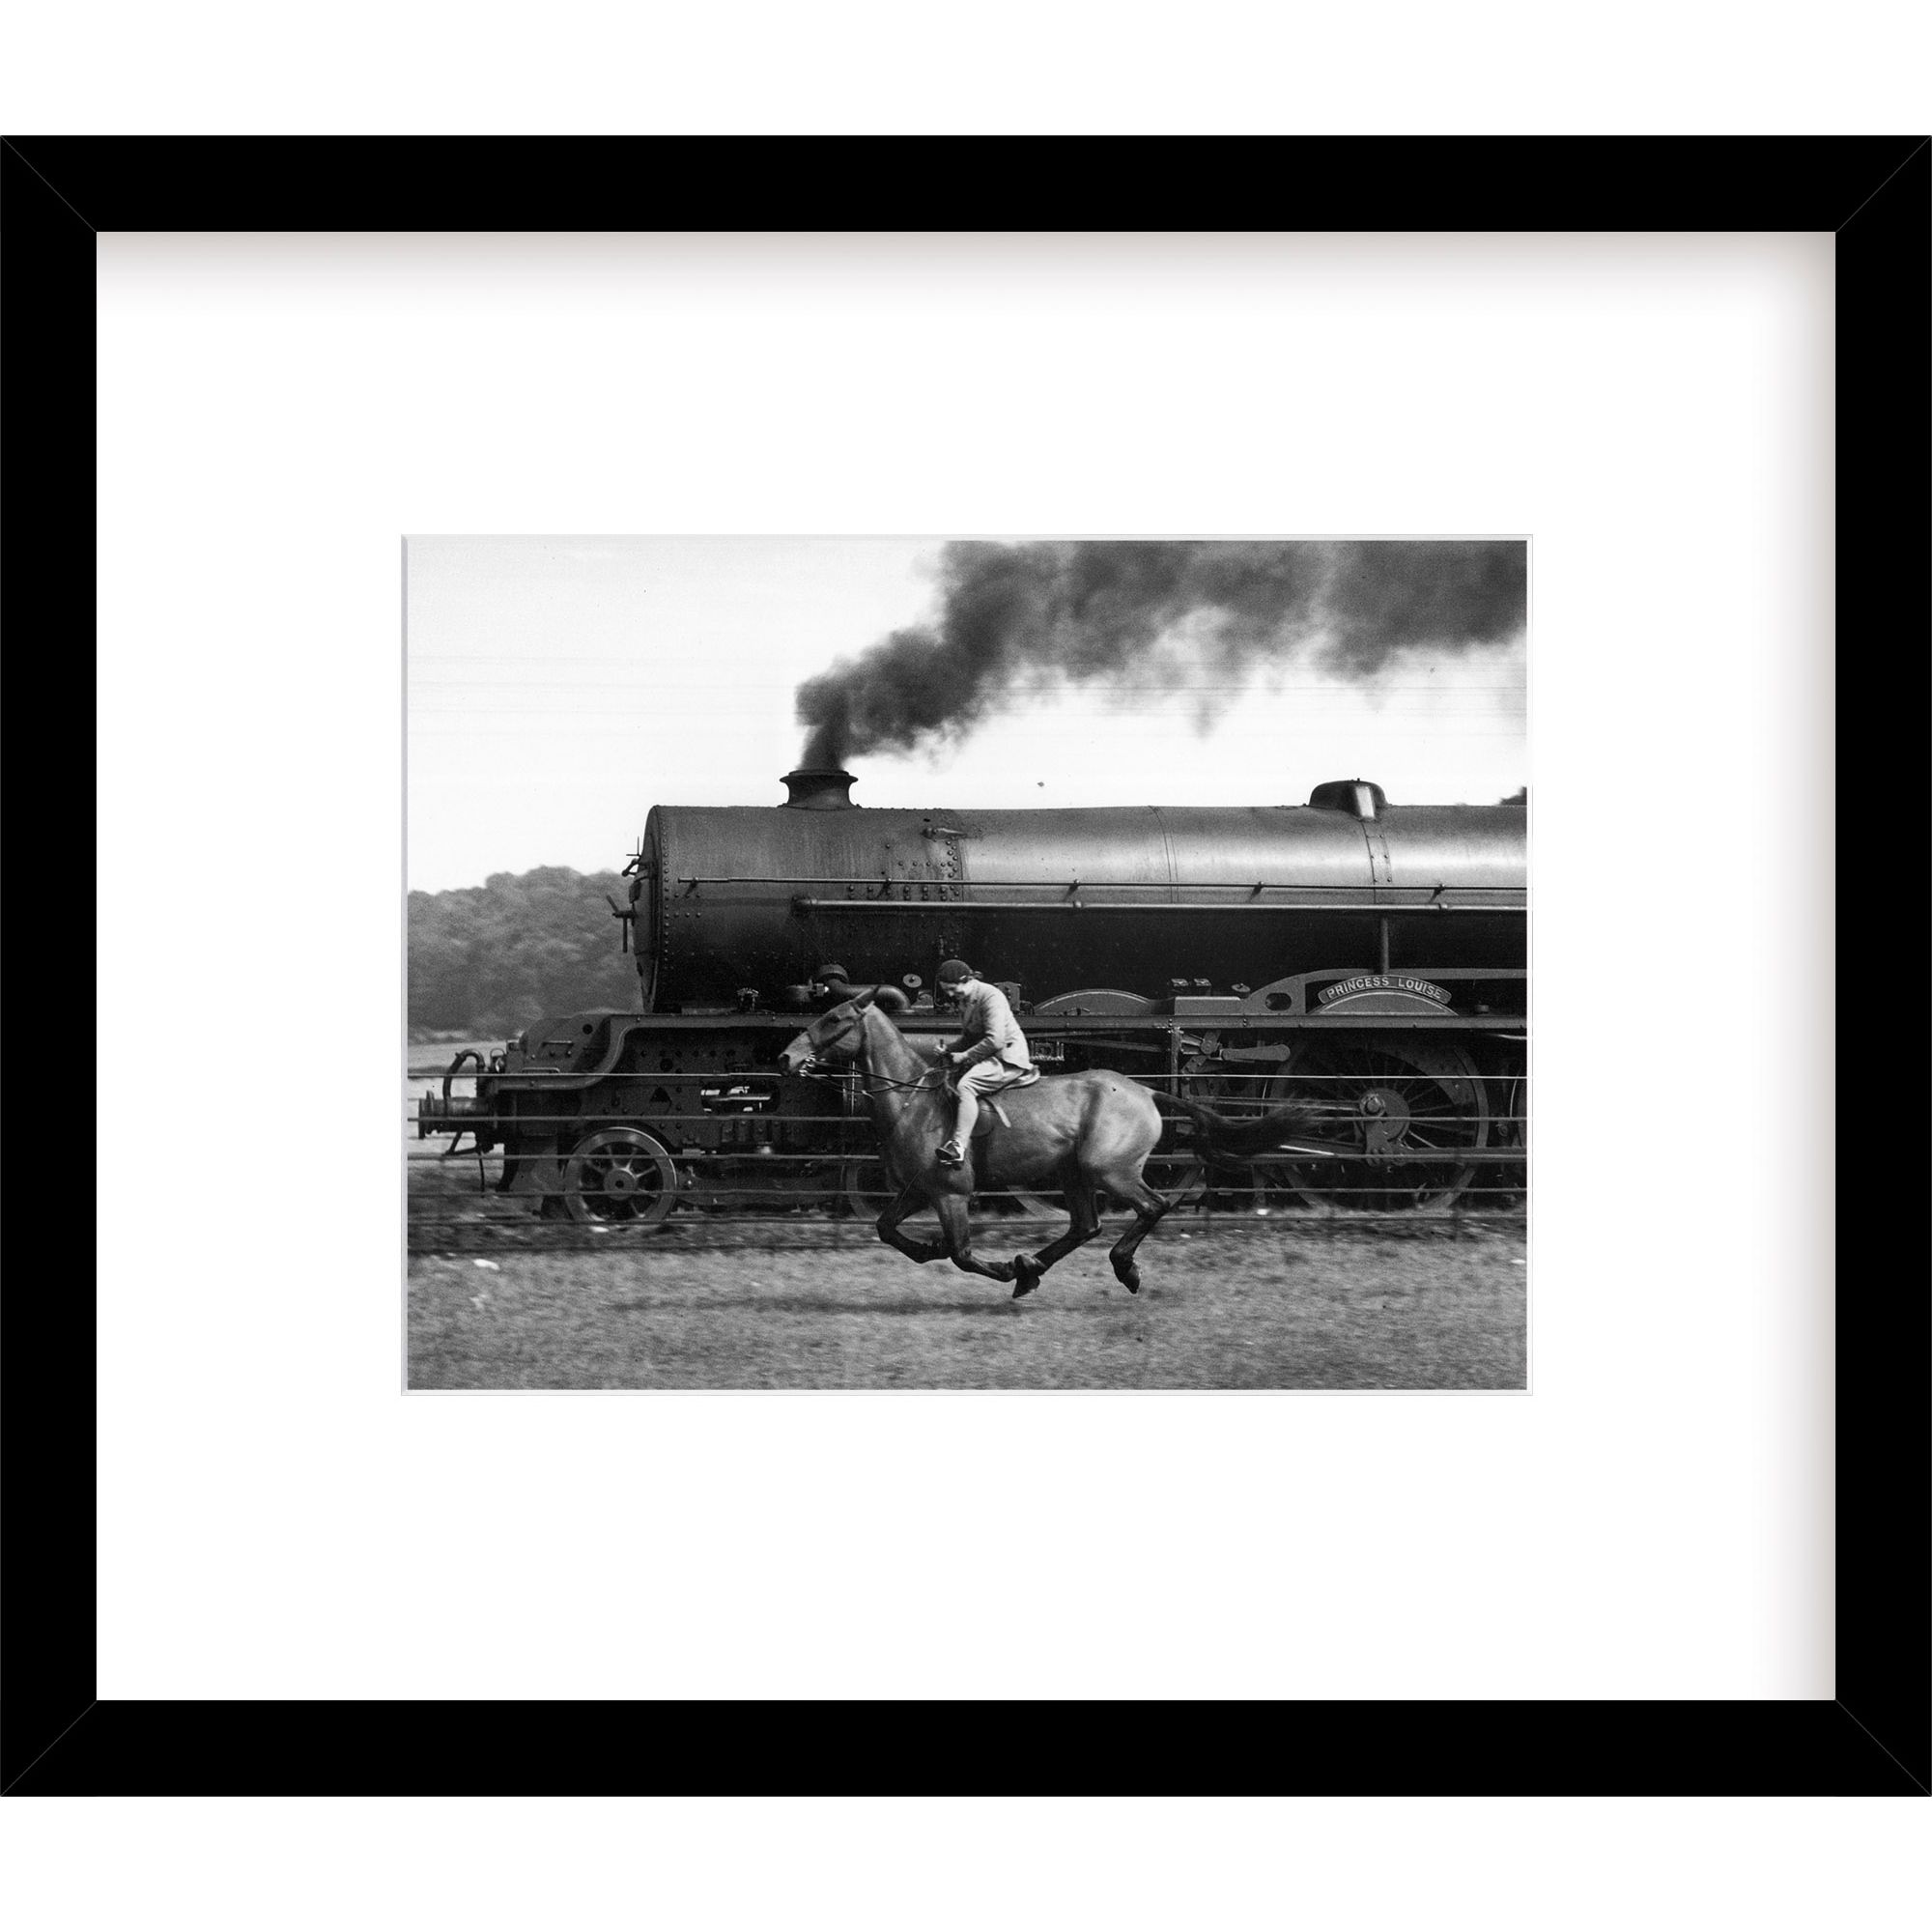 Getty Images Gallery Getty Images Gallery - Steamy Steed Framed Print, 49 x 57cm